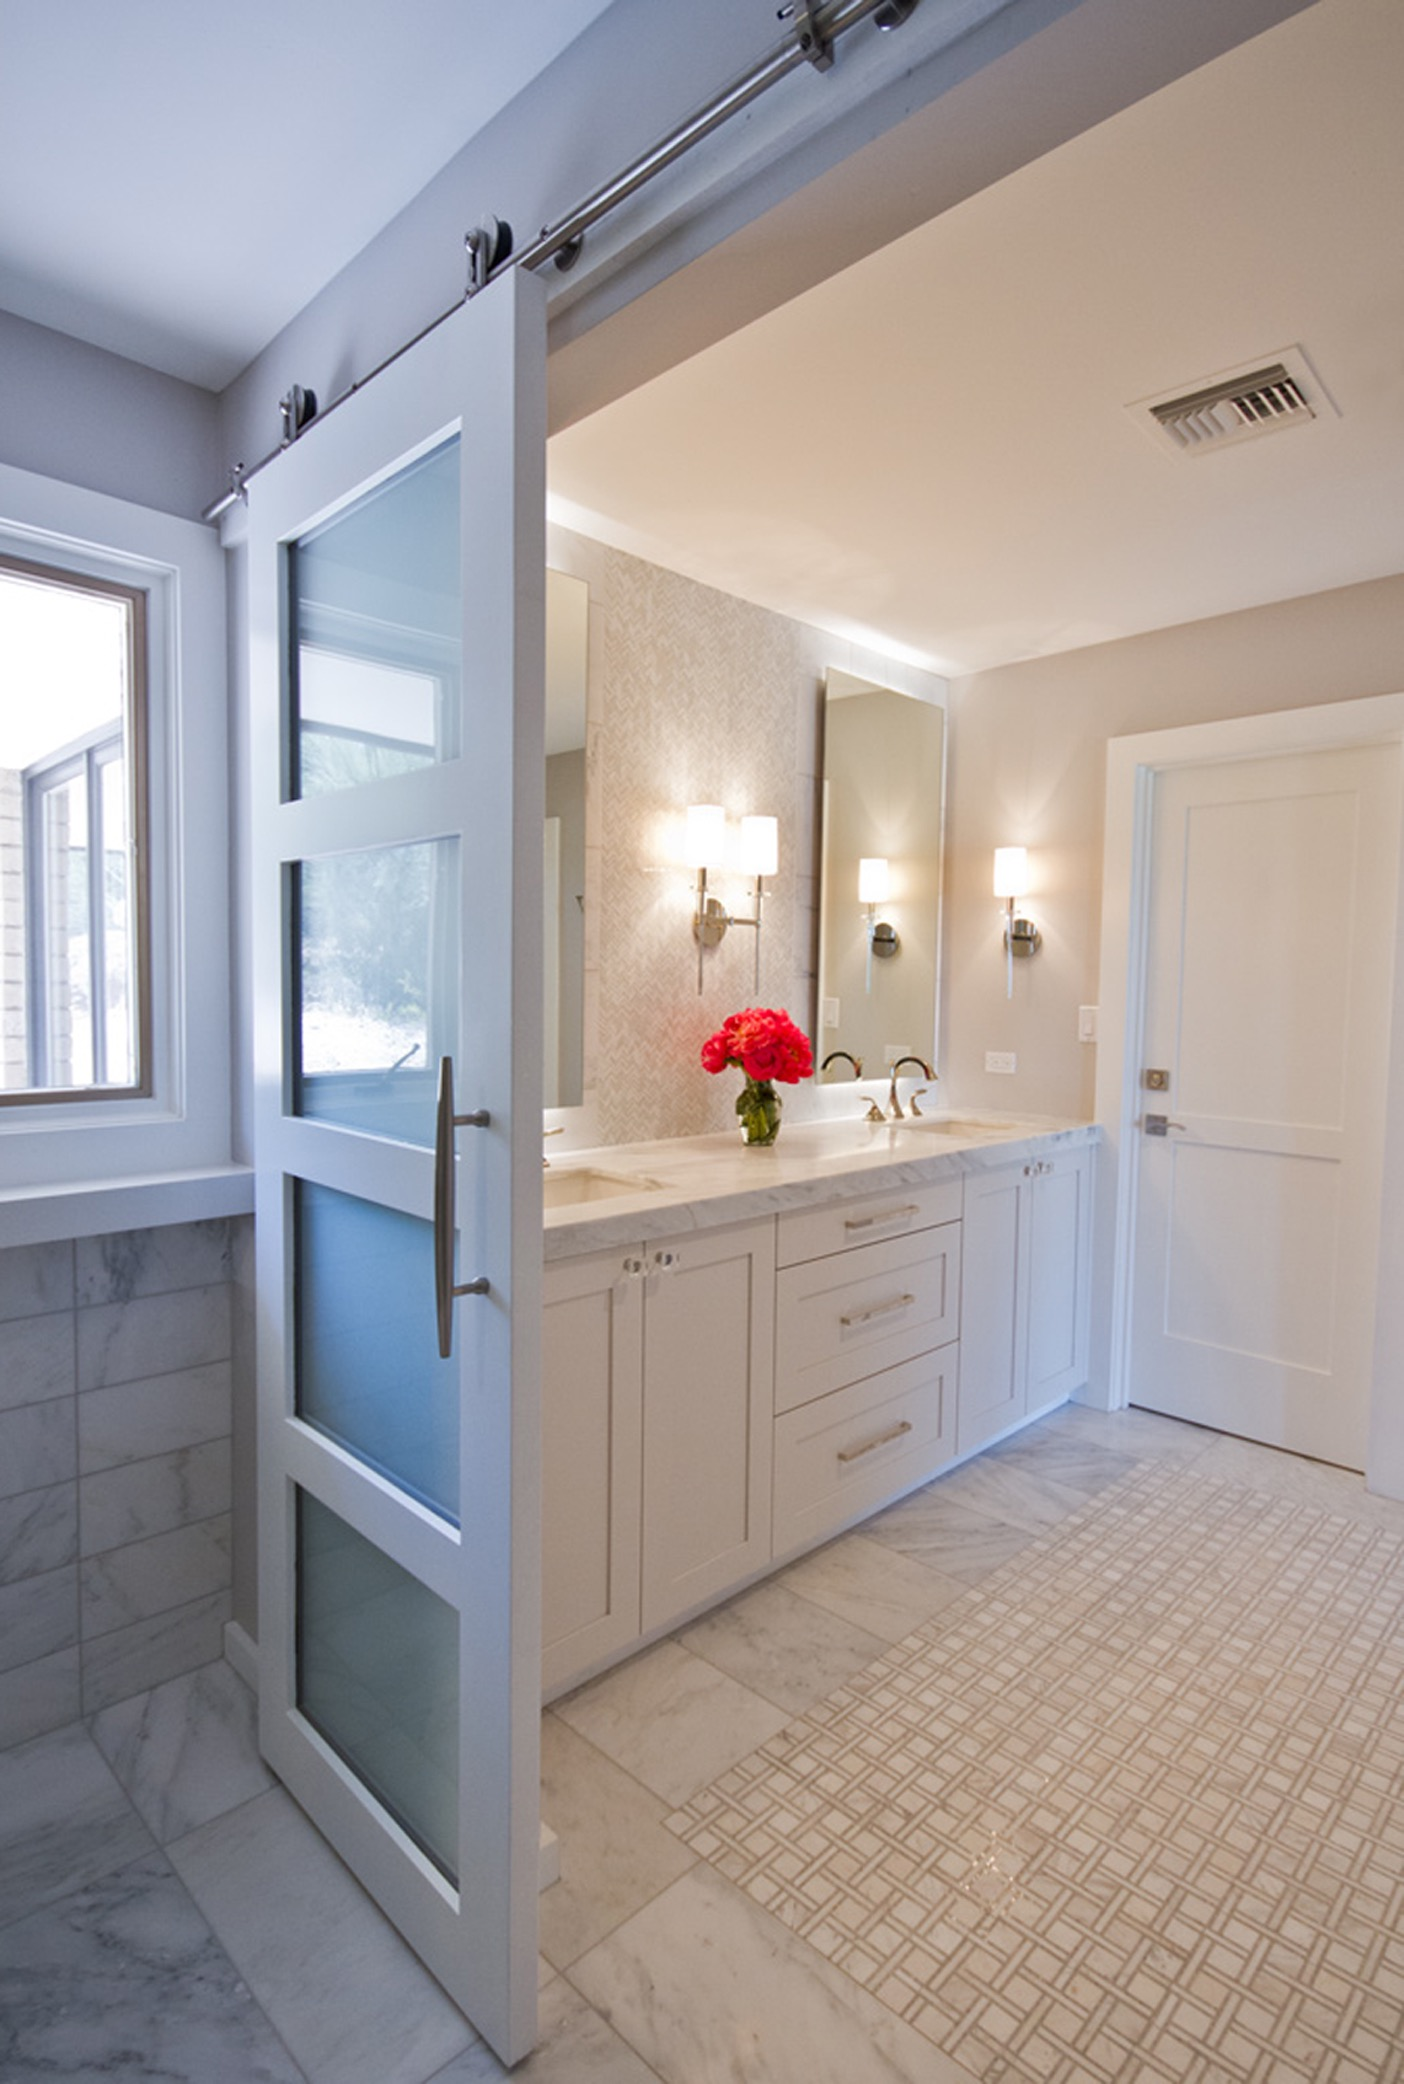 Classic Bathroom Features Plenty Of Storage Space (Image 1 of 20)